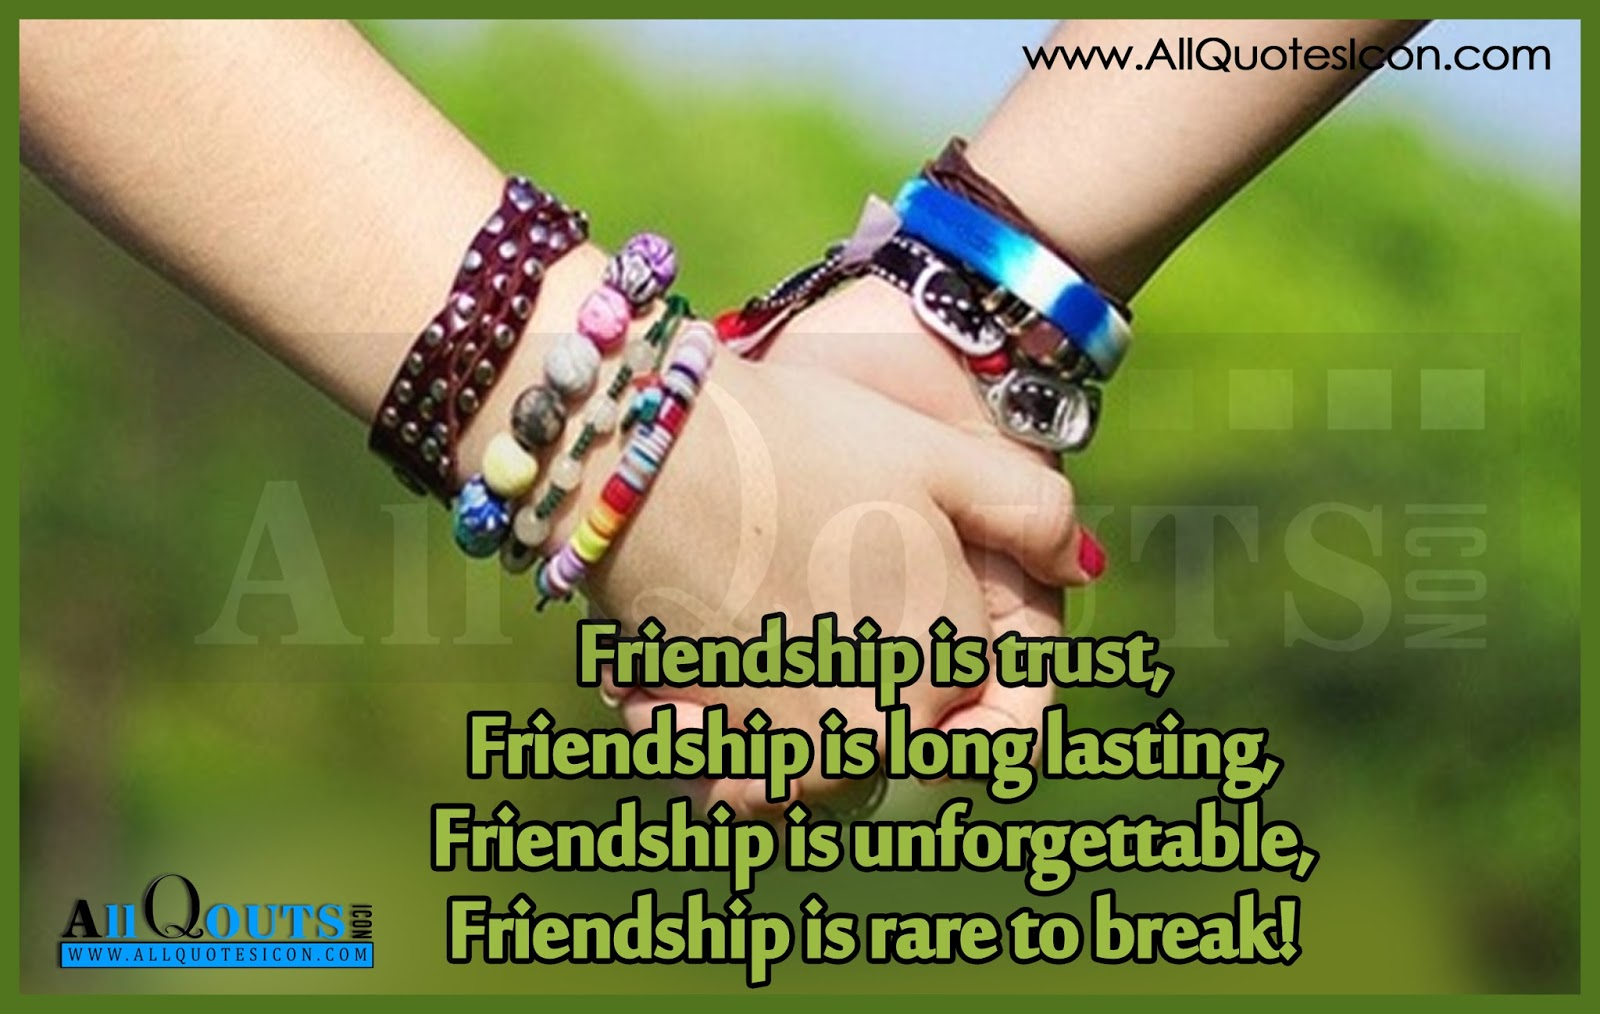 Best Friendship Day Quotes With Images In English : Friendship feelings and quotes in english hd pictures best